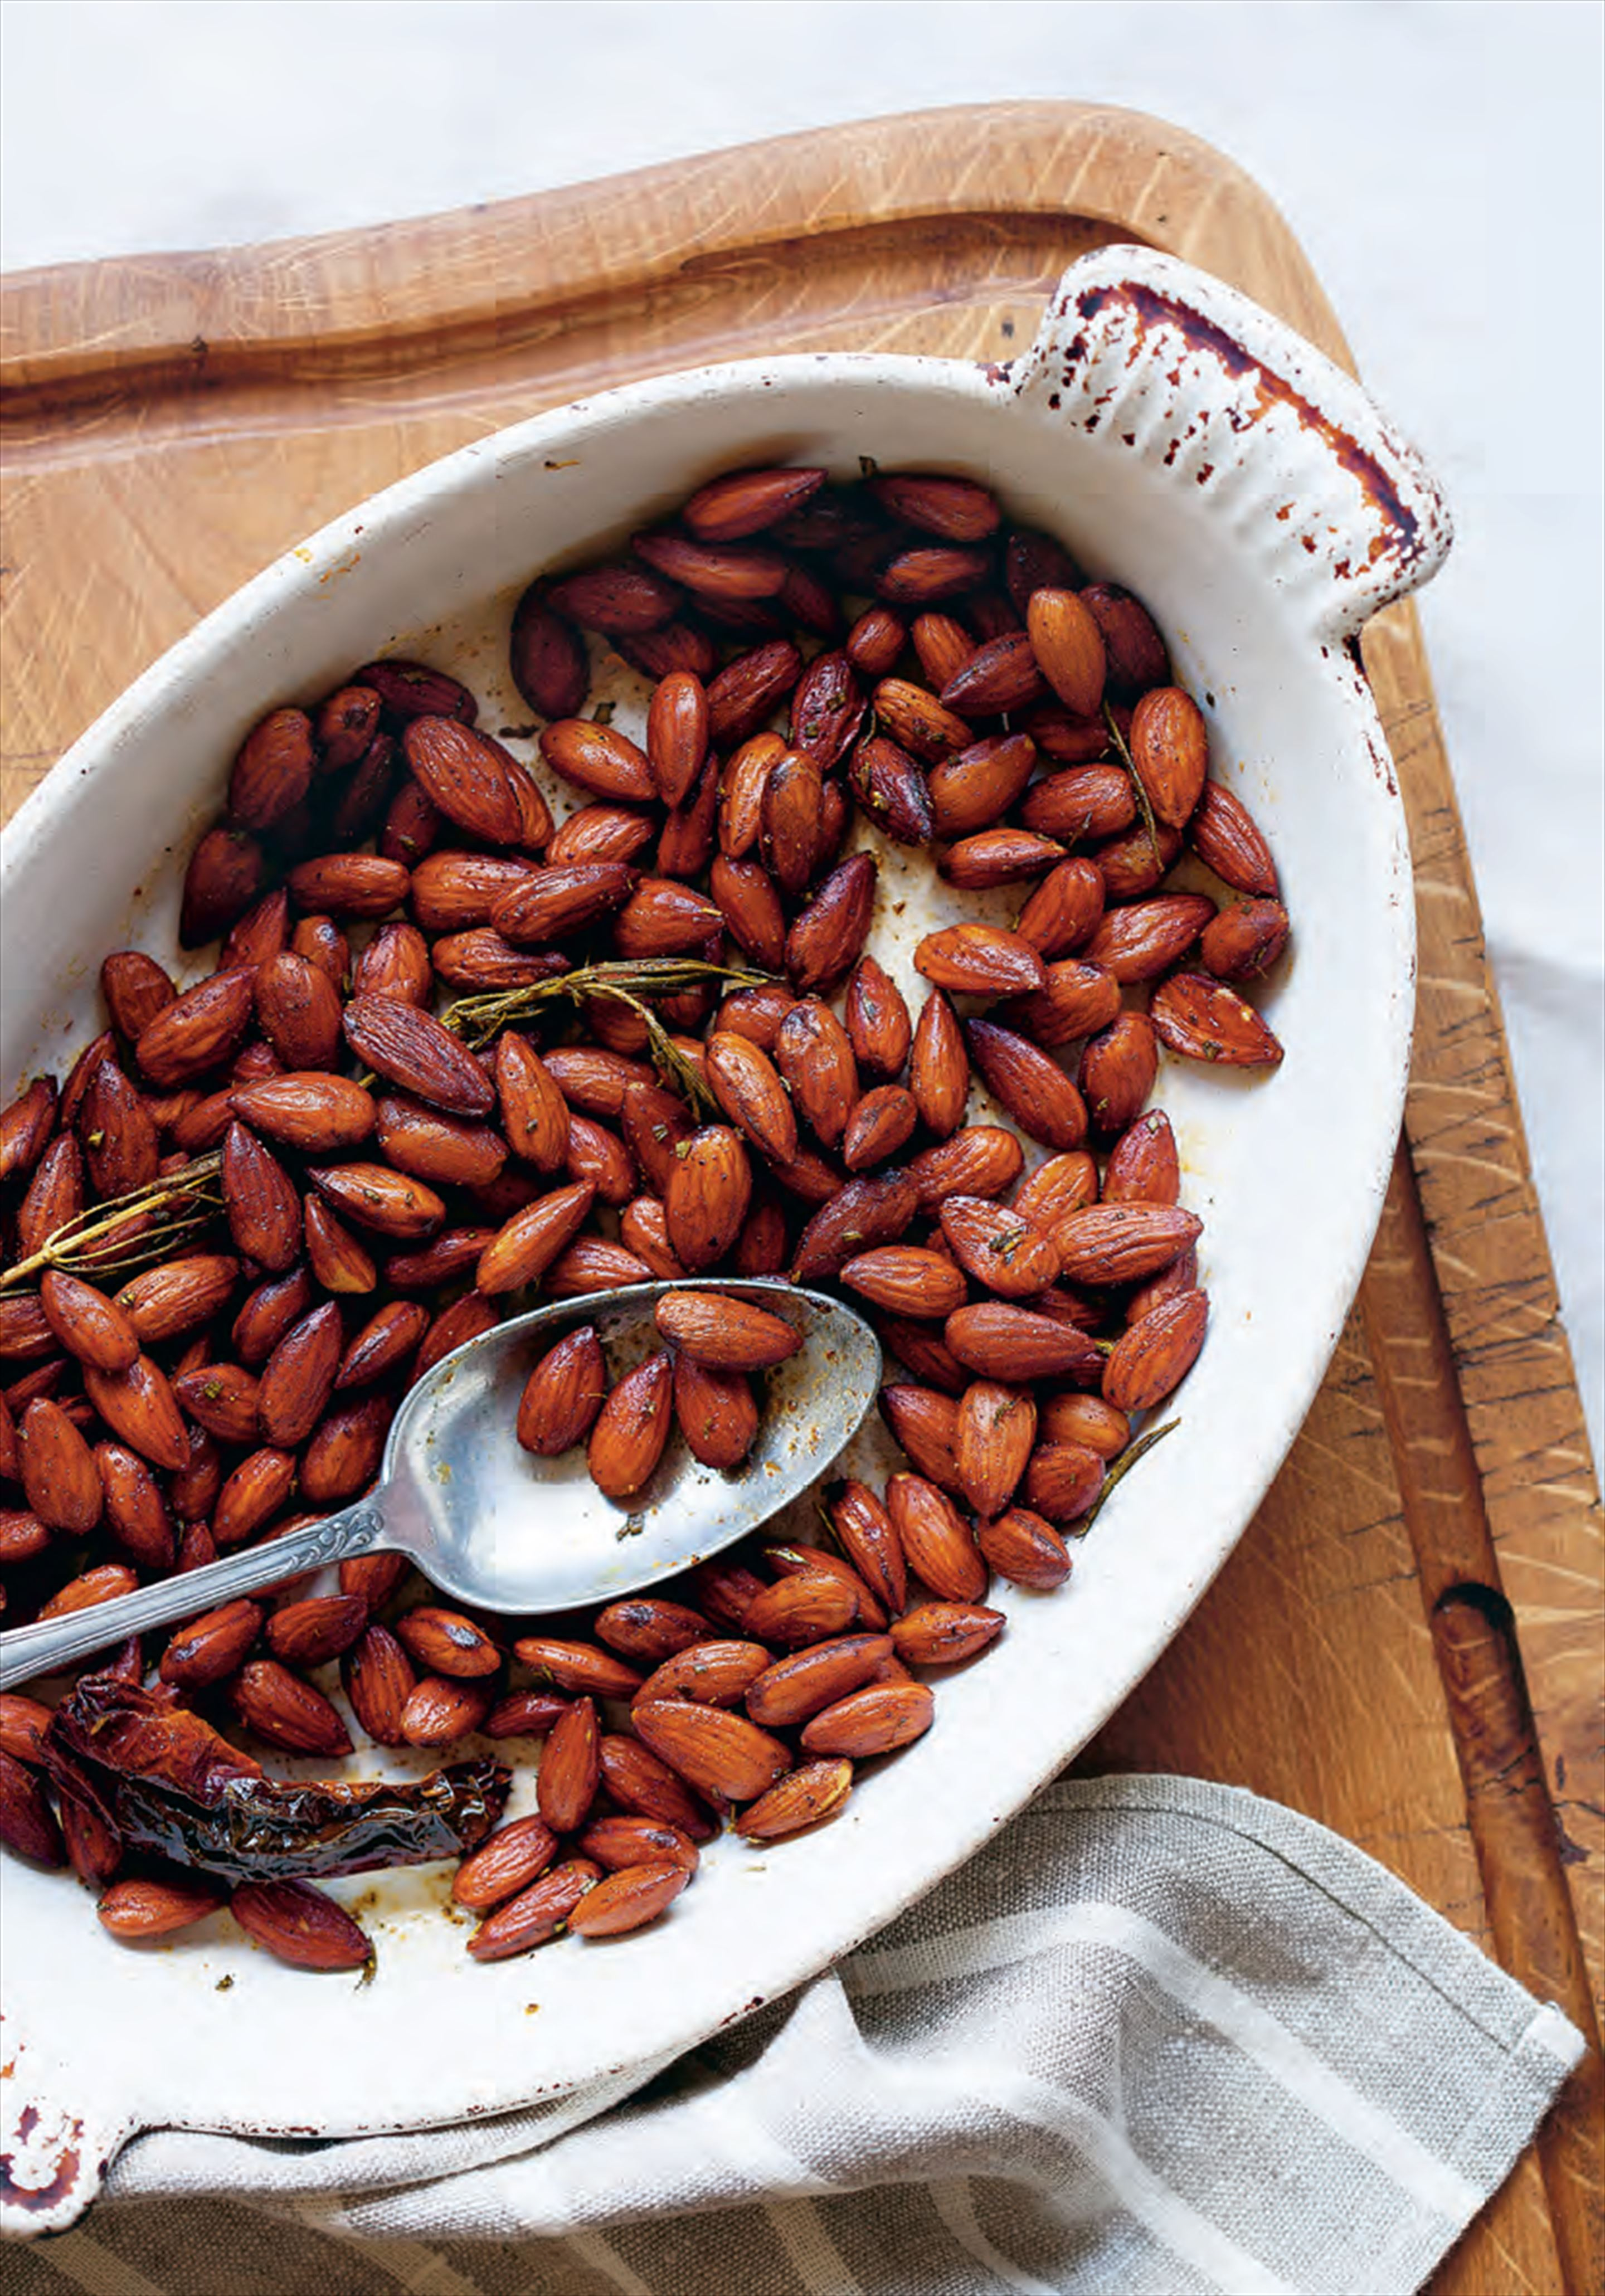 Brined and roasted spiced almonds